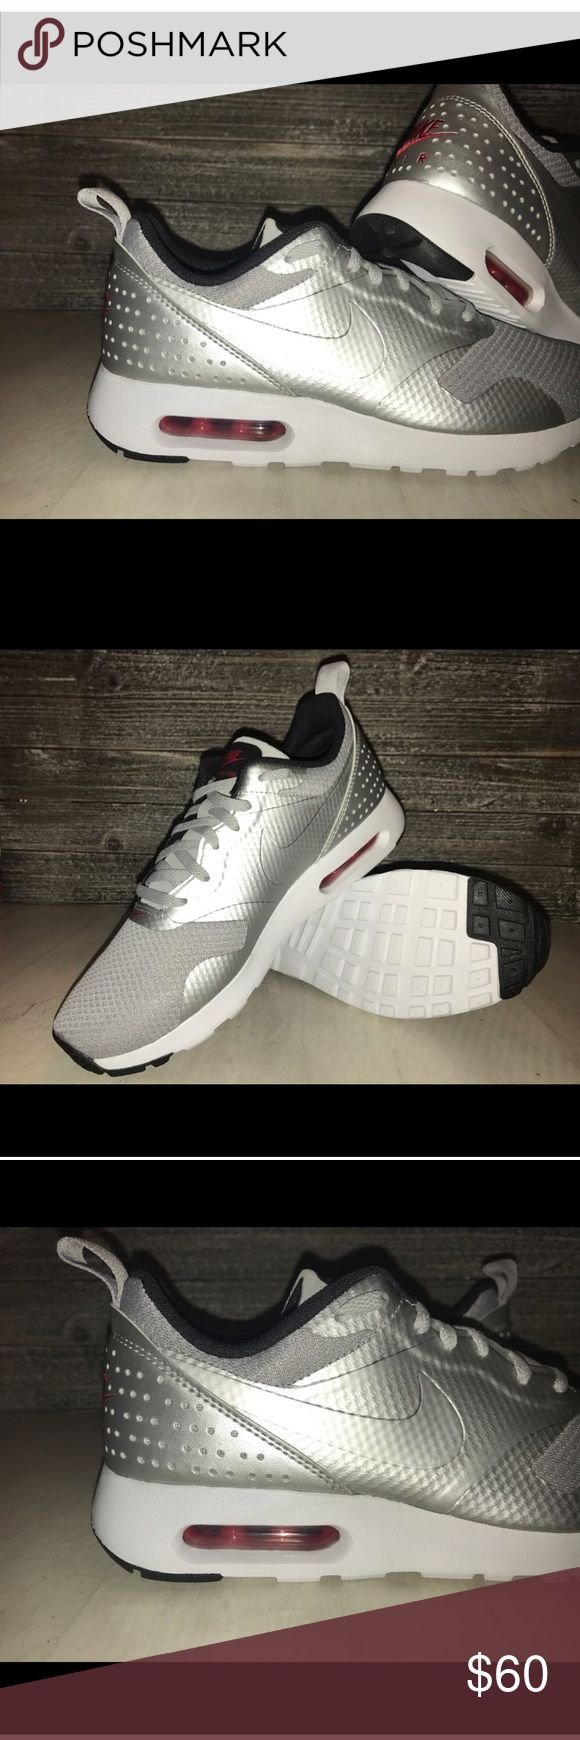 NWT !!! WOMENS NIKE AIR MAX TAVAS !! NEW IN BOX!! NEW IN BOX !!!  NIKE AIR MAX TAVAS. WOMENS RUNNING SHOE.   SIZE: 8  COLOR: SILVER with RED accent. Nike Shoes Sneakers